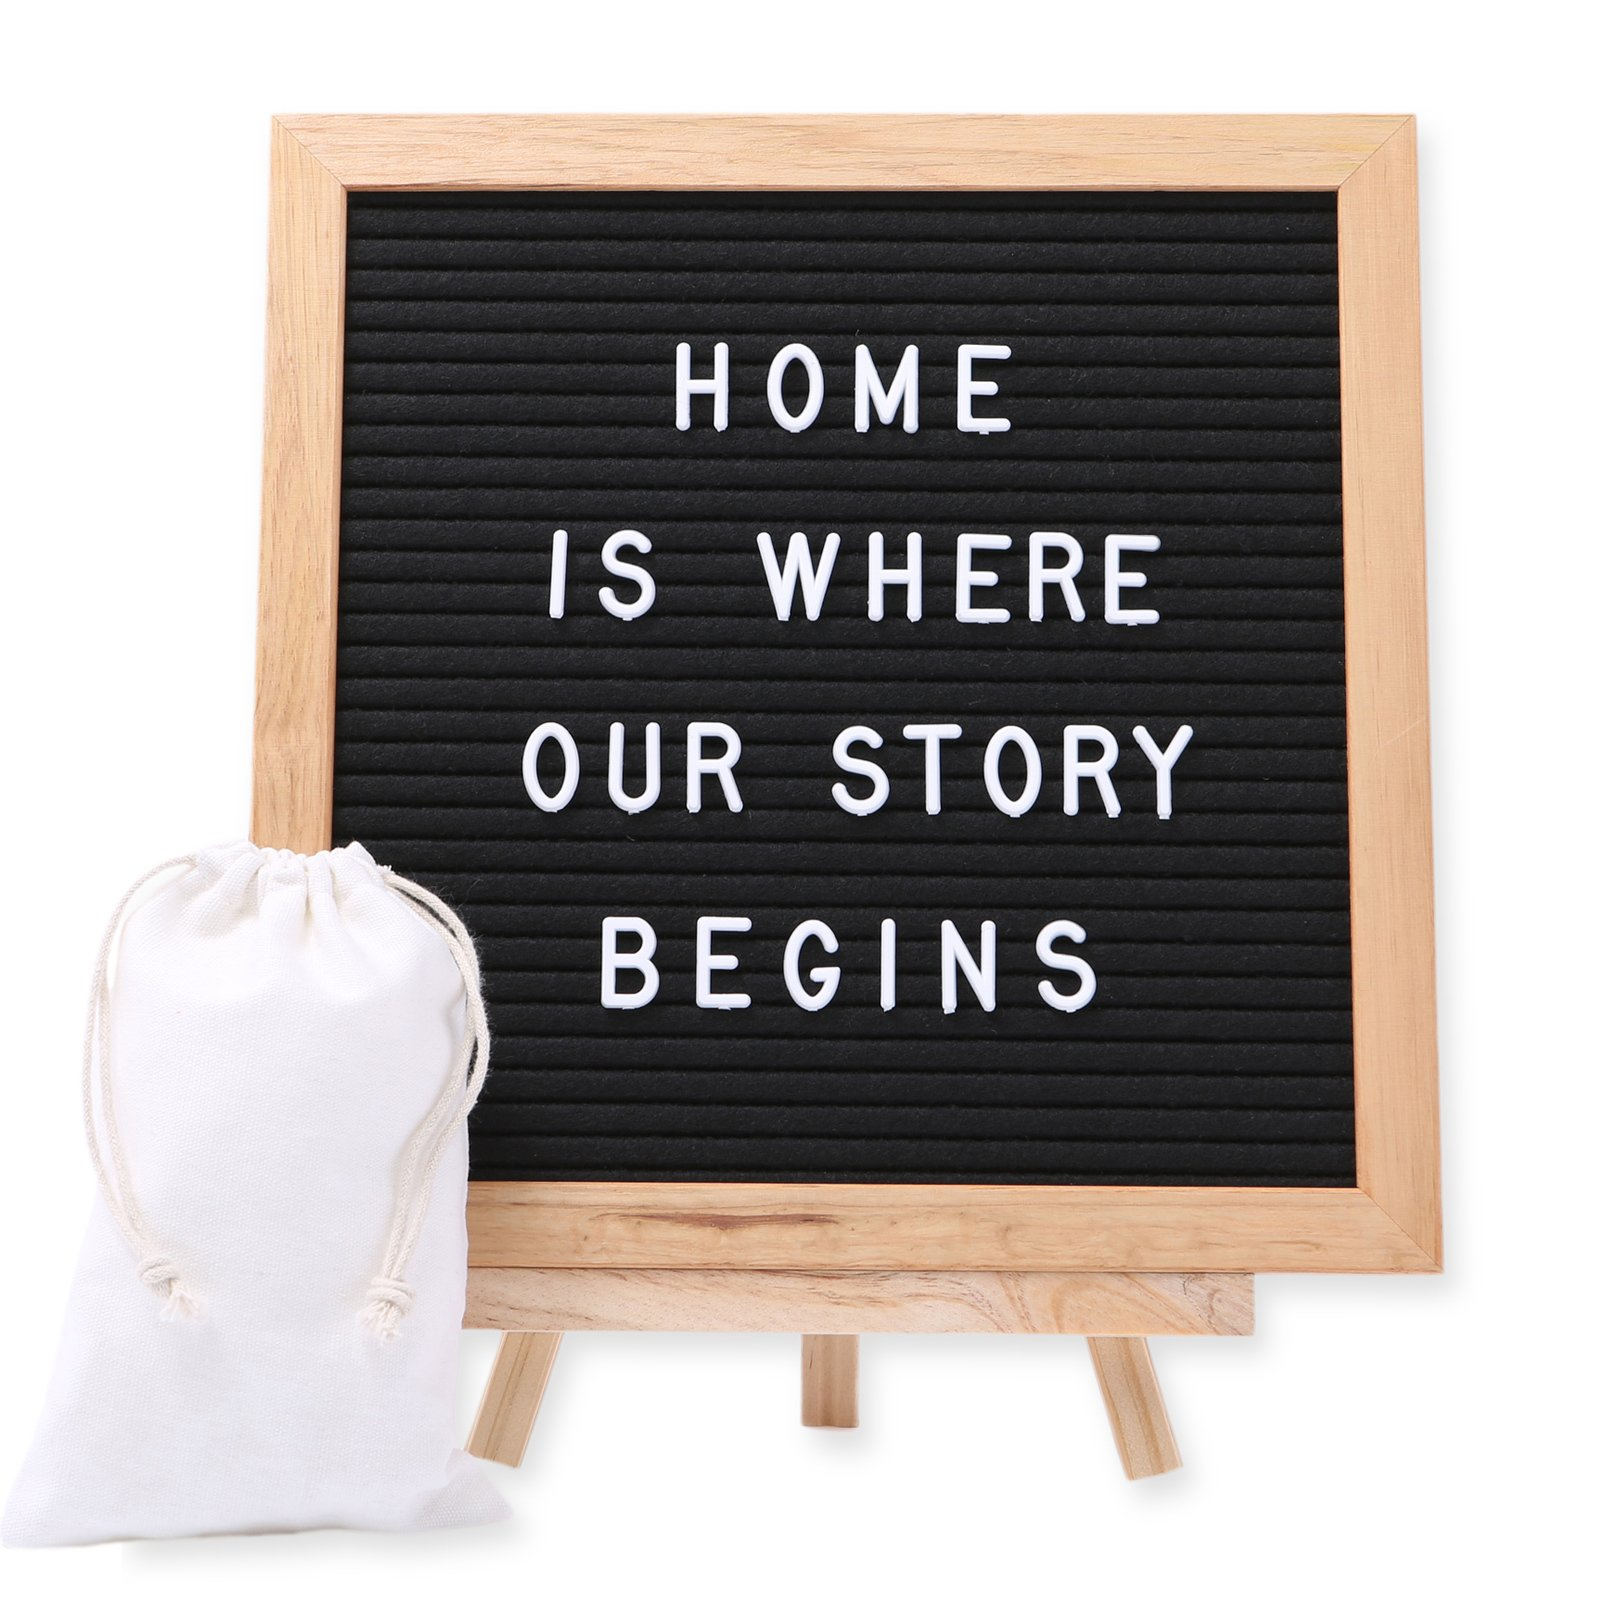 J&A Homes Felt Letter Board Sign - Oak Frame, Black Felt, Over 300 White Letters, Numbers, Special Characters, Symbols and Emojis - Wall Mount and Stand